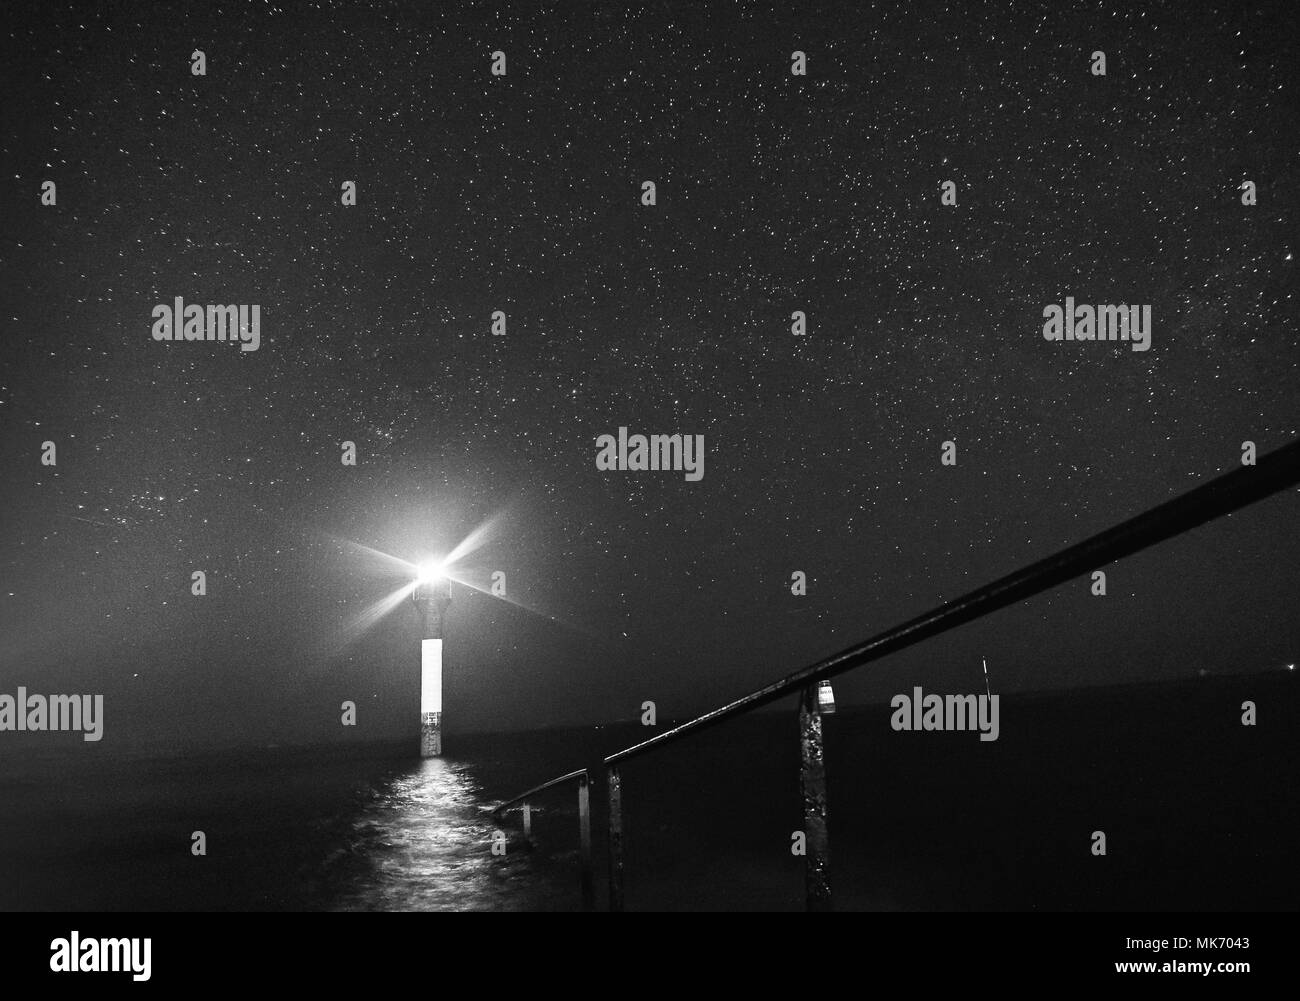 The stars in the sky - Stock Image